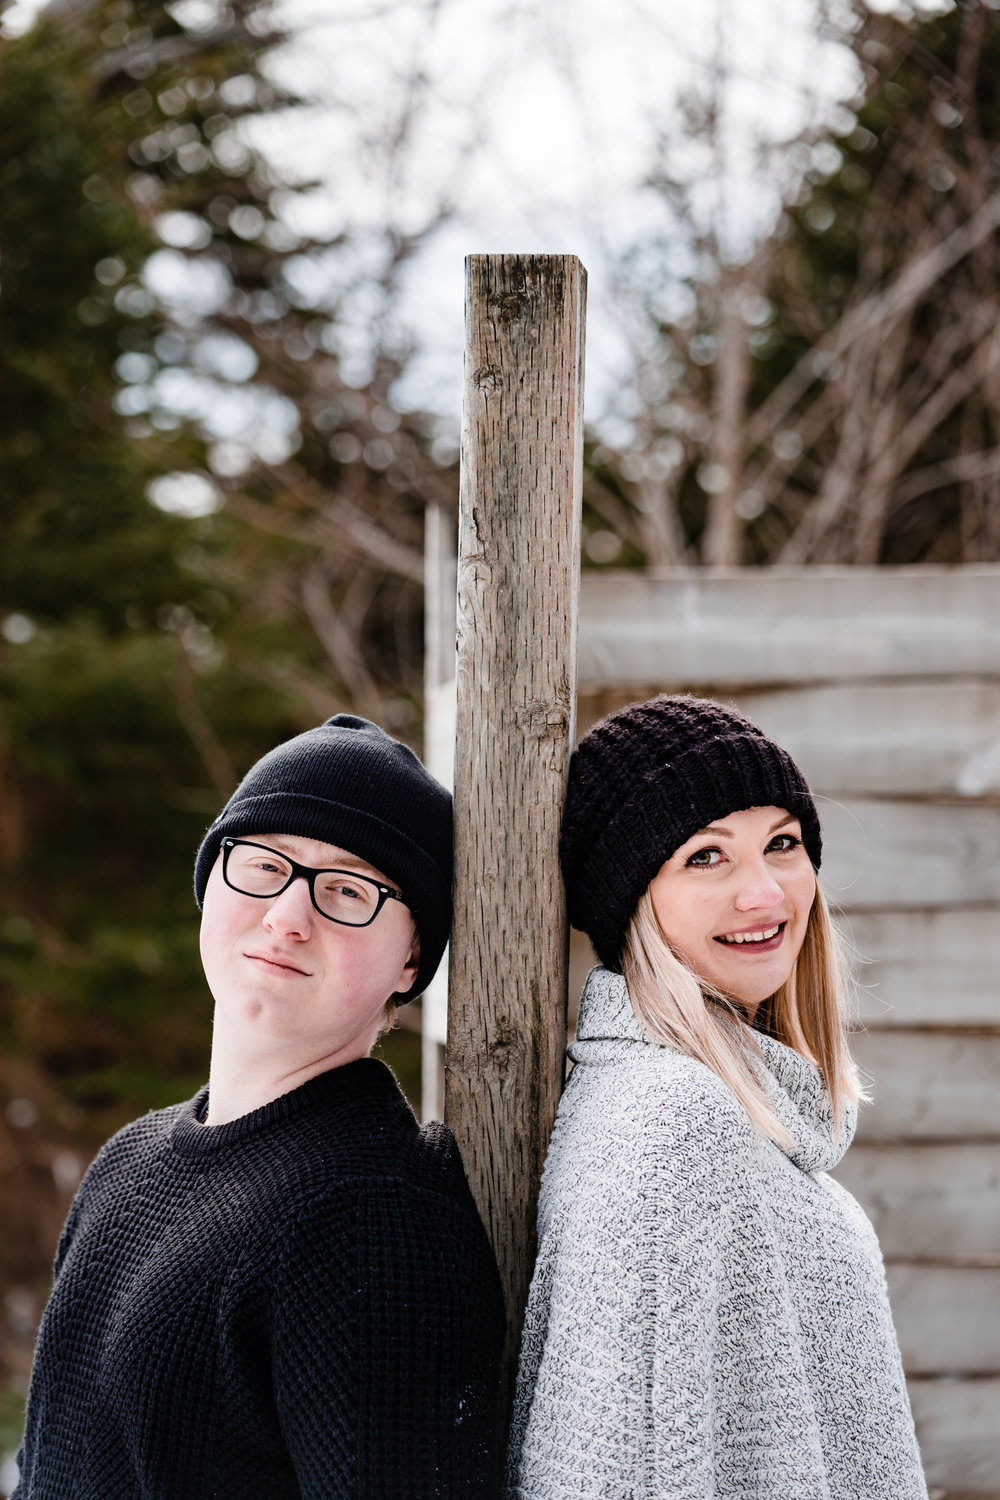 Haley&Brandon (55 of 64)halifax-novascotia-engagementphotography-wedding-foxandfellow-Ottawa-winter.jpg